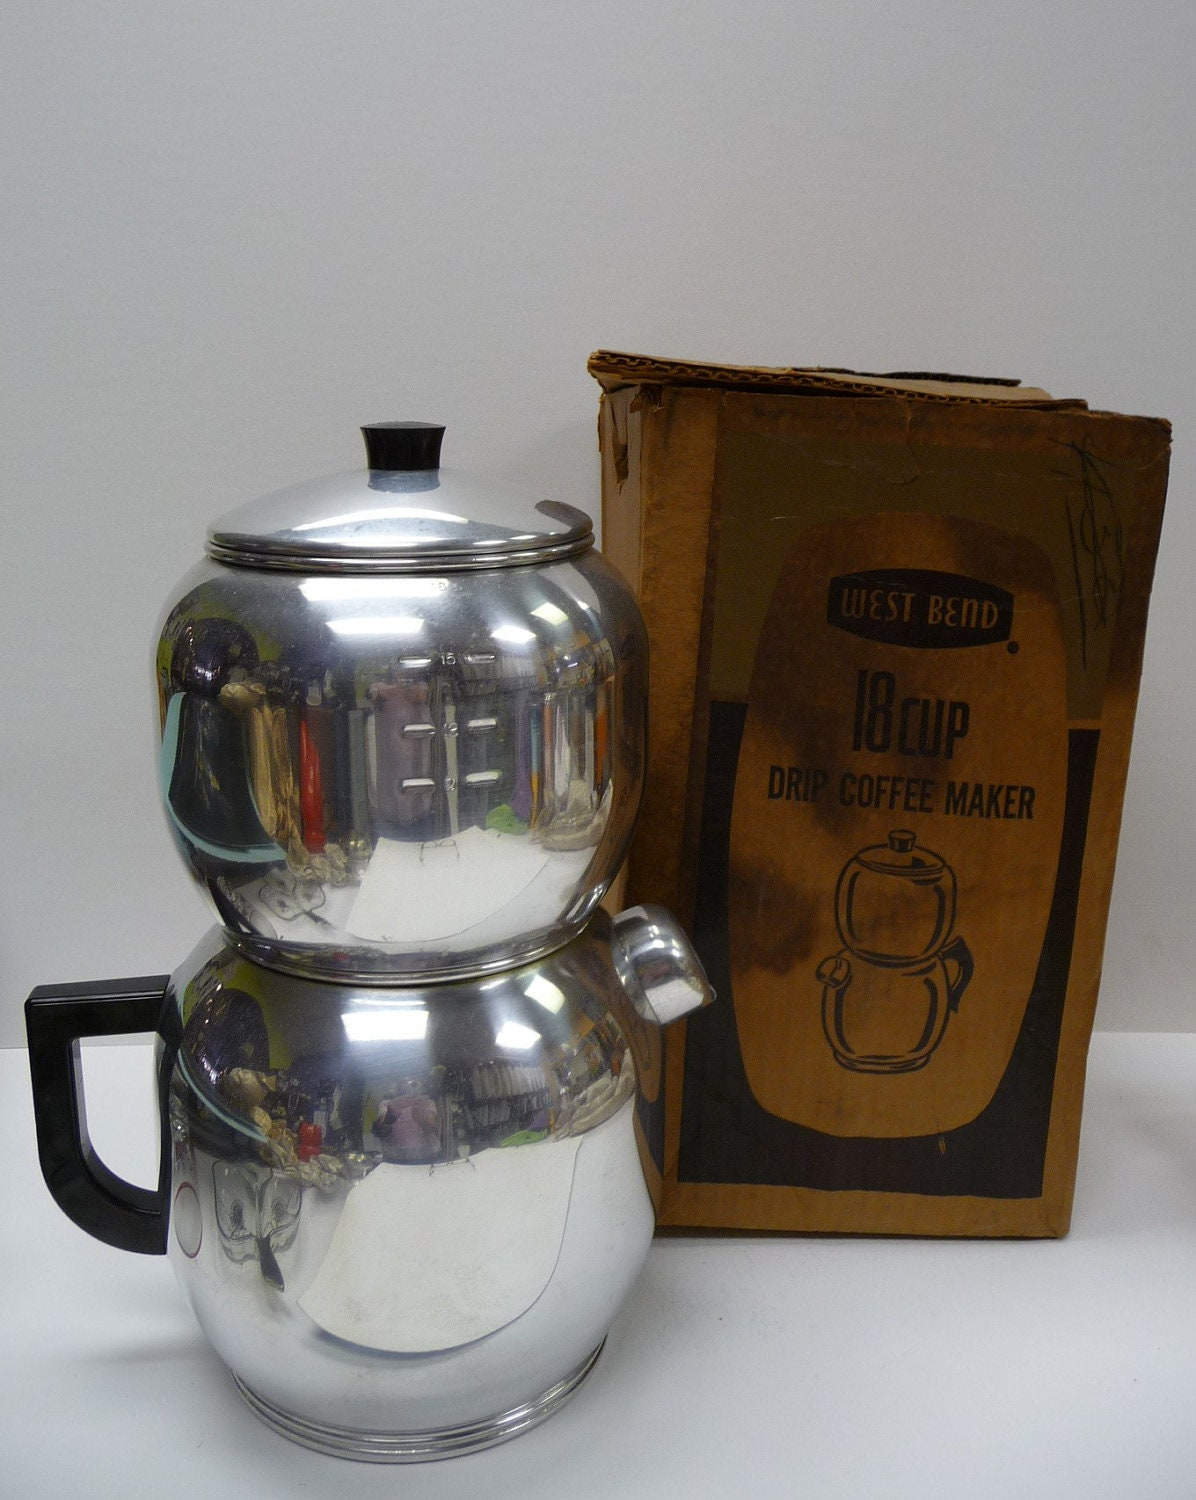 Old Drip Coffee Maker : Vintage Drip Coffee Maker West Bend in Box 18 cup Aluminum